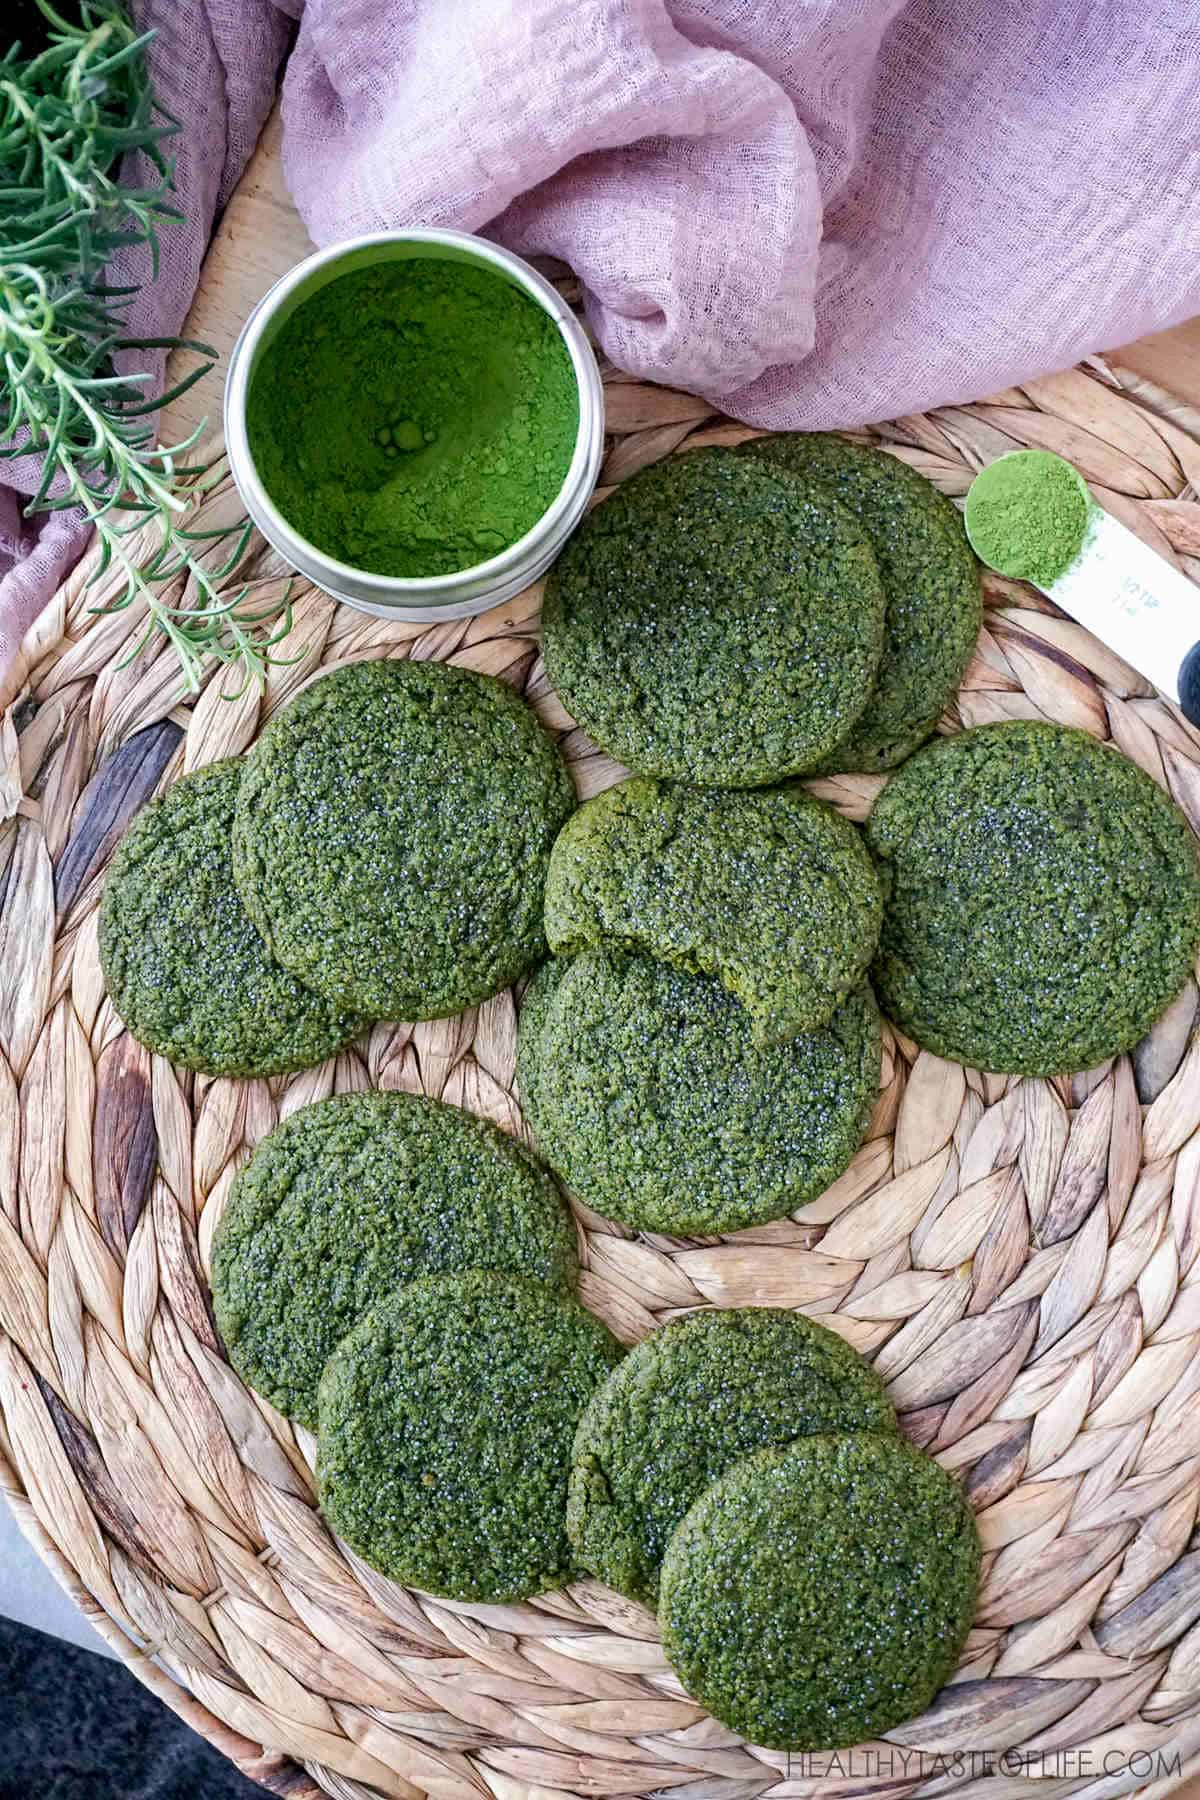 Healthy Matcha Cookies - vegan gluten free matcha cookies recipe with oatmeal and poppy seeds. #healthycookies #matchacookies #vegancookies #glutenfreecookies #matcha